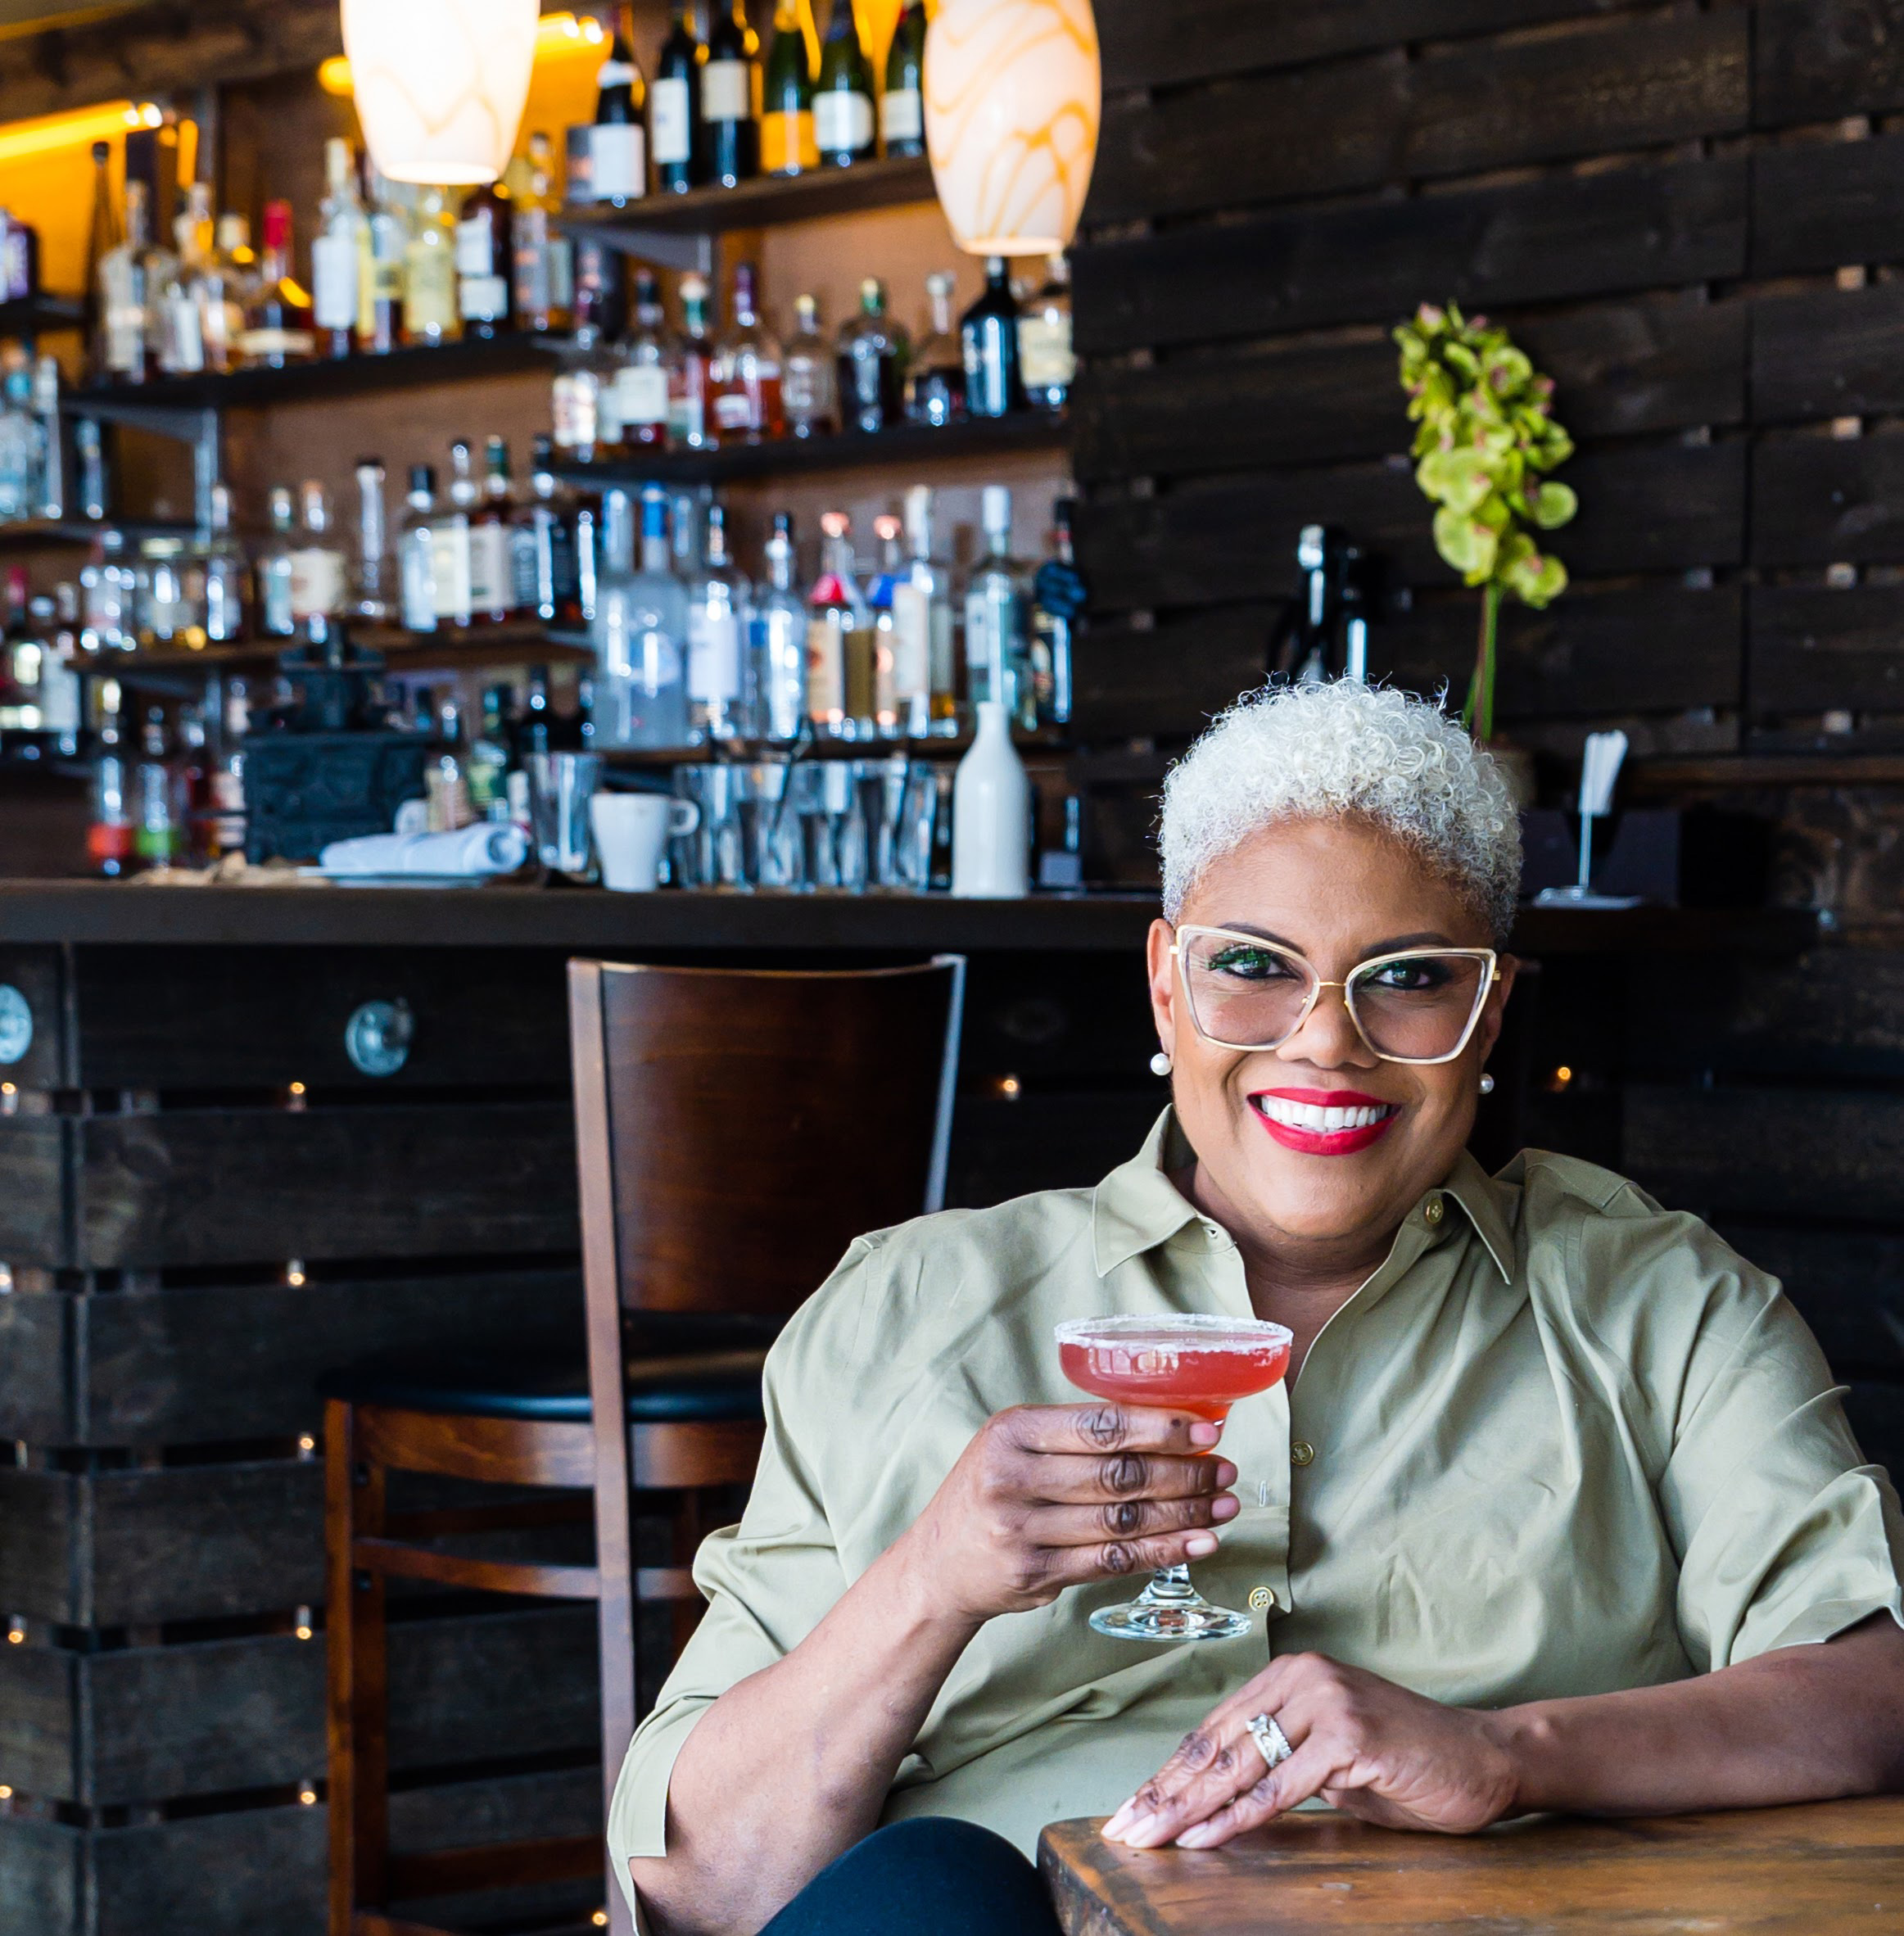 Chef Deborah VanTrece - Owner of Twisted Soul Cookhouse and Pours and noted caterer for the Centennial Olympics, Chef Deborah VanTrece has been seen on Food Network and was named one of Zagat's Most Badass Female Chefs.